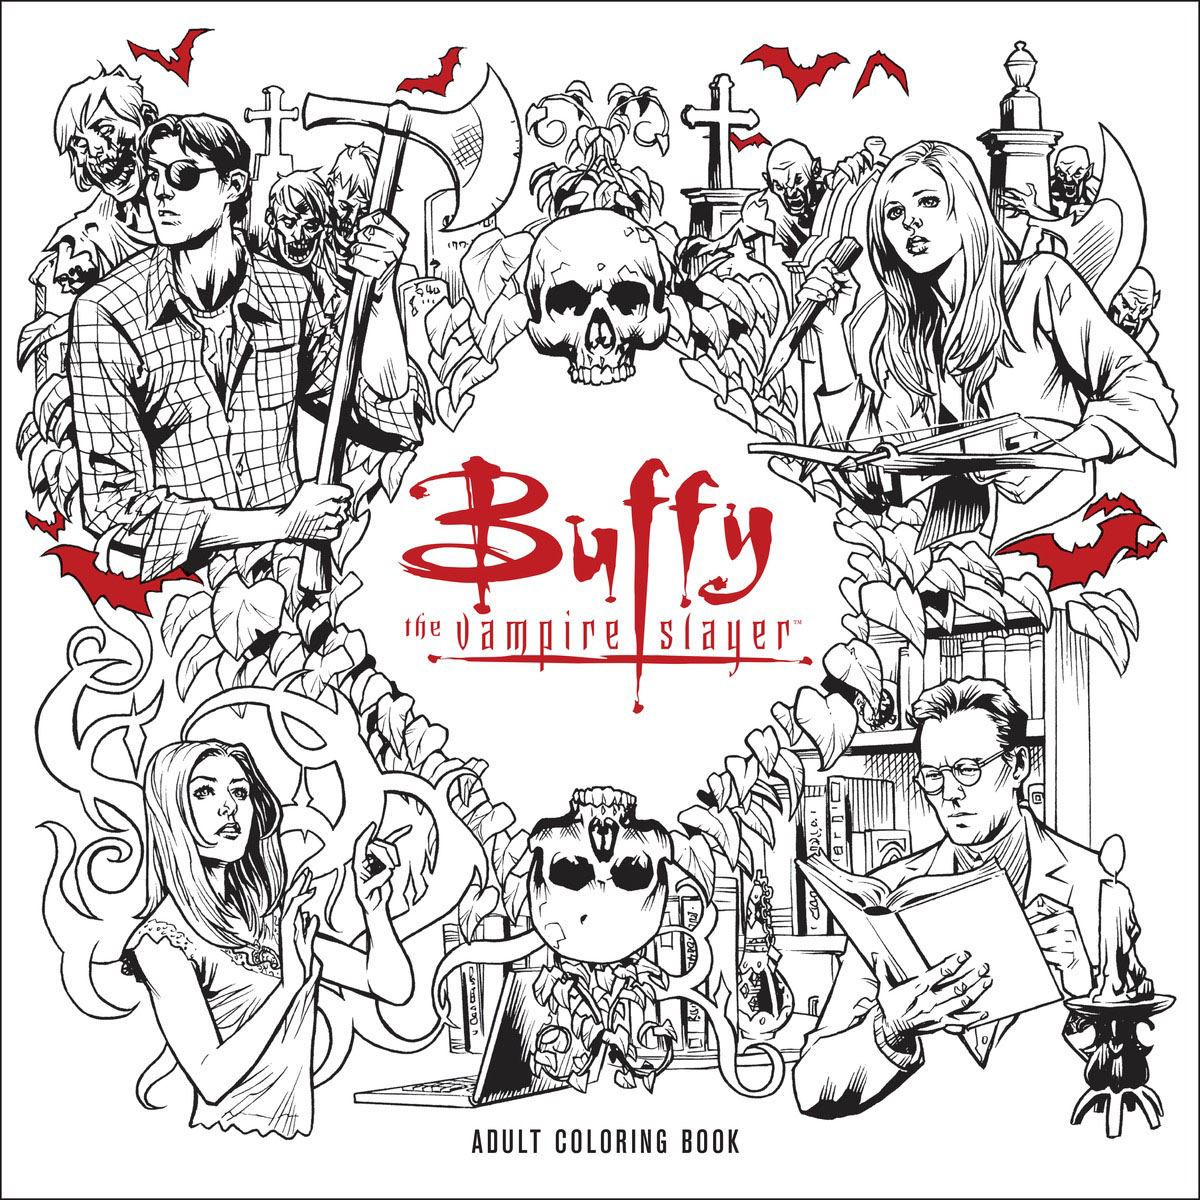 Buffy the Vampire Slayer Adult Coloring Book skull the slayer